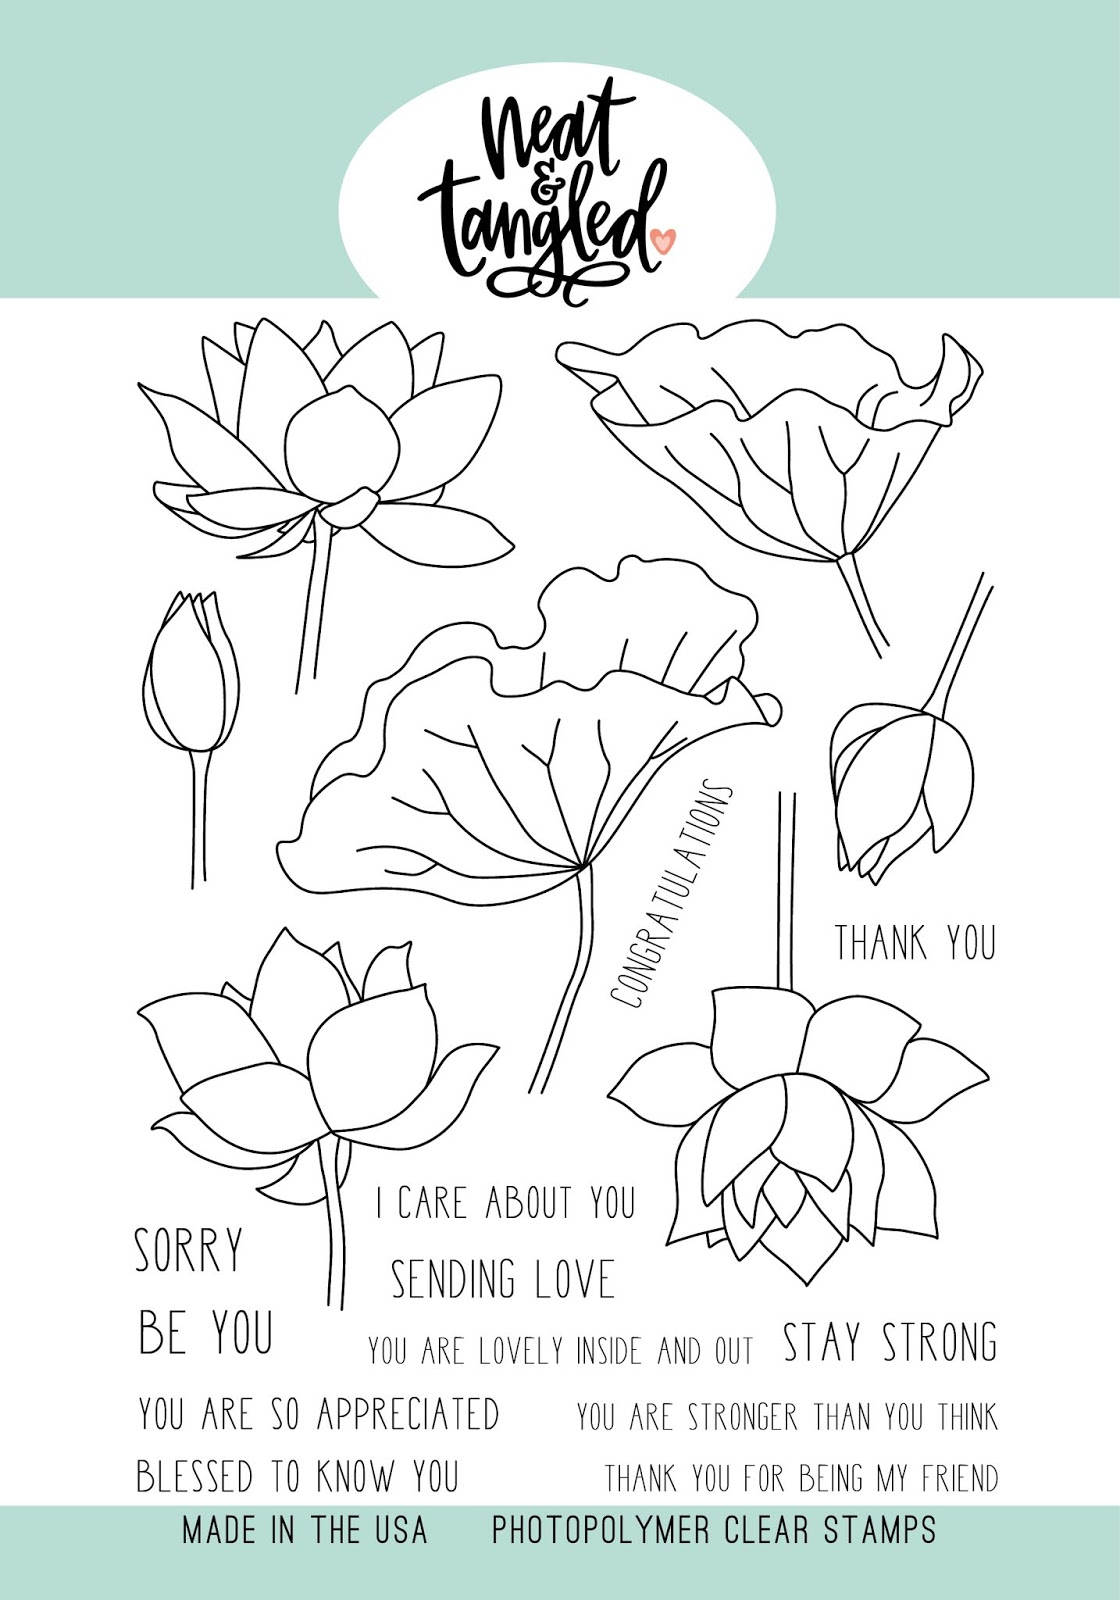 October 2018 Release Day 2 Lovely Lotus Card Front Designs Dies